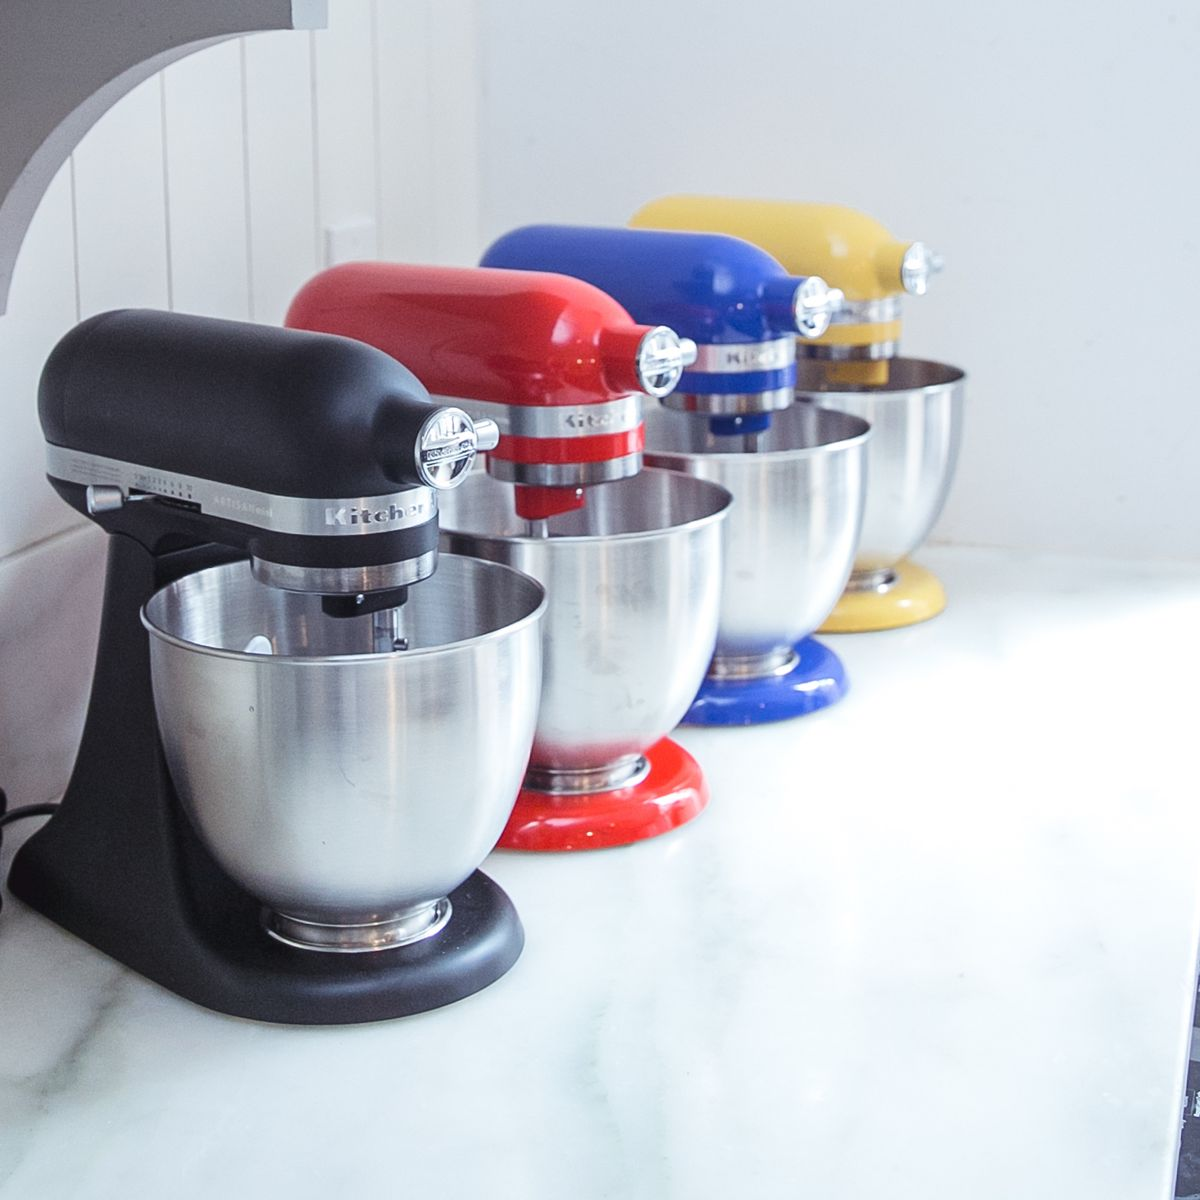 Kitchenaid S Newest Mixer Color Takes The Cake